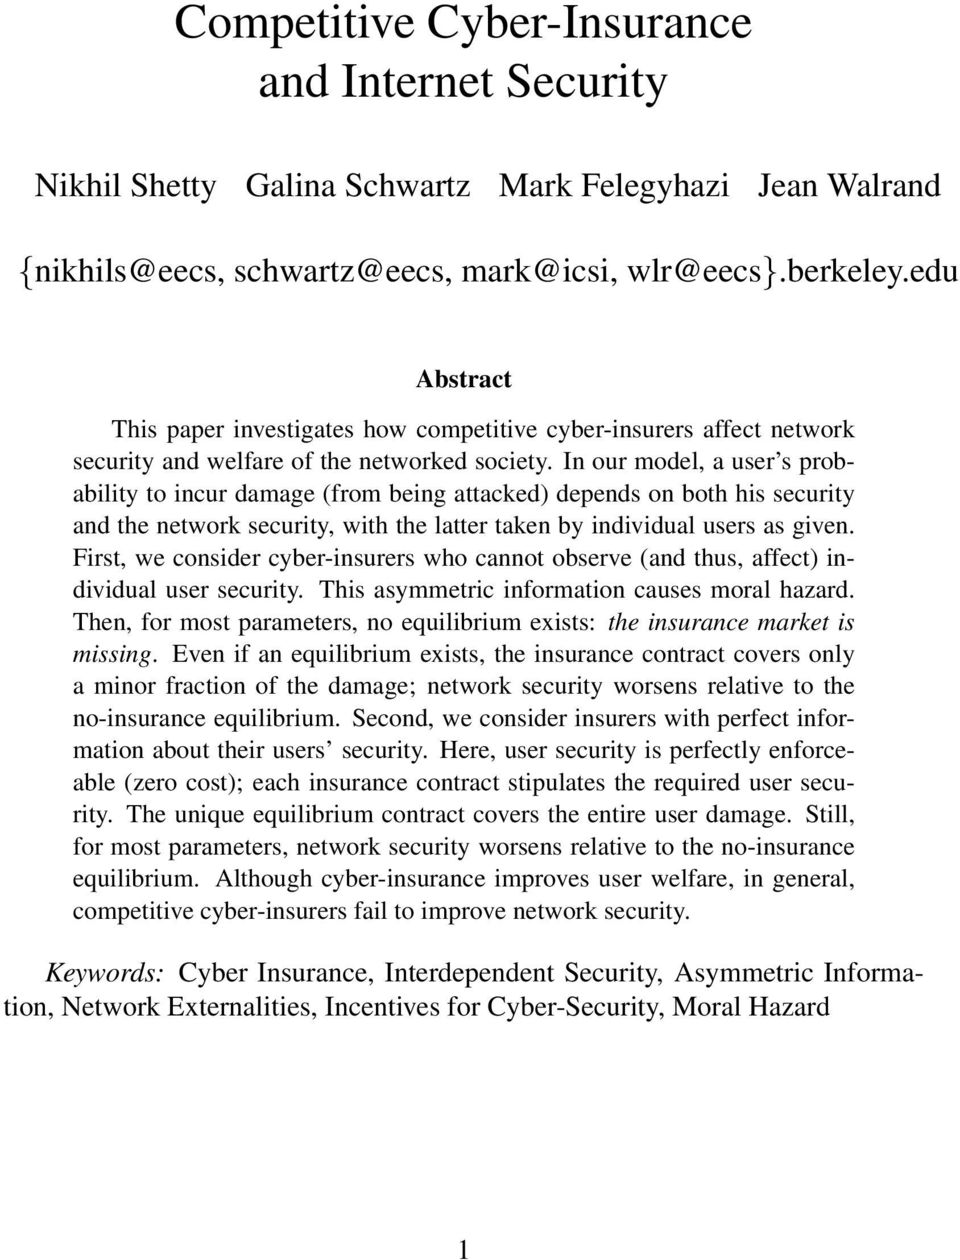 In our model, a user s probability to incur damage (from being attacked) depends on both his security and the network security, with the latter taken by individual users as given.